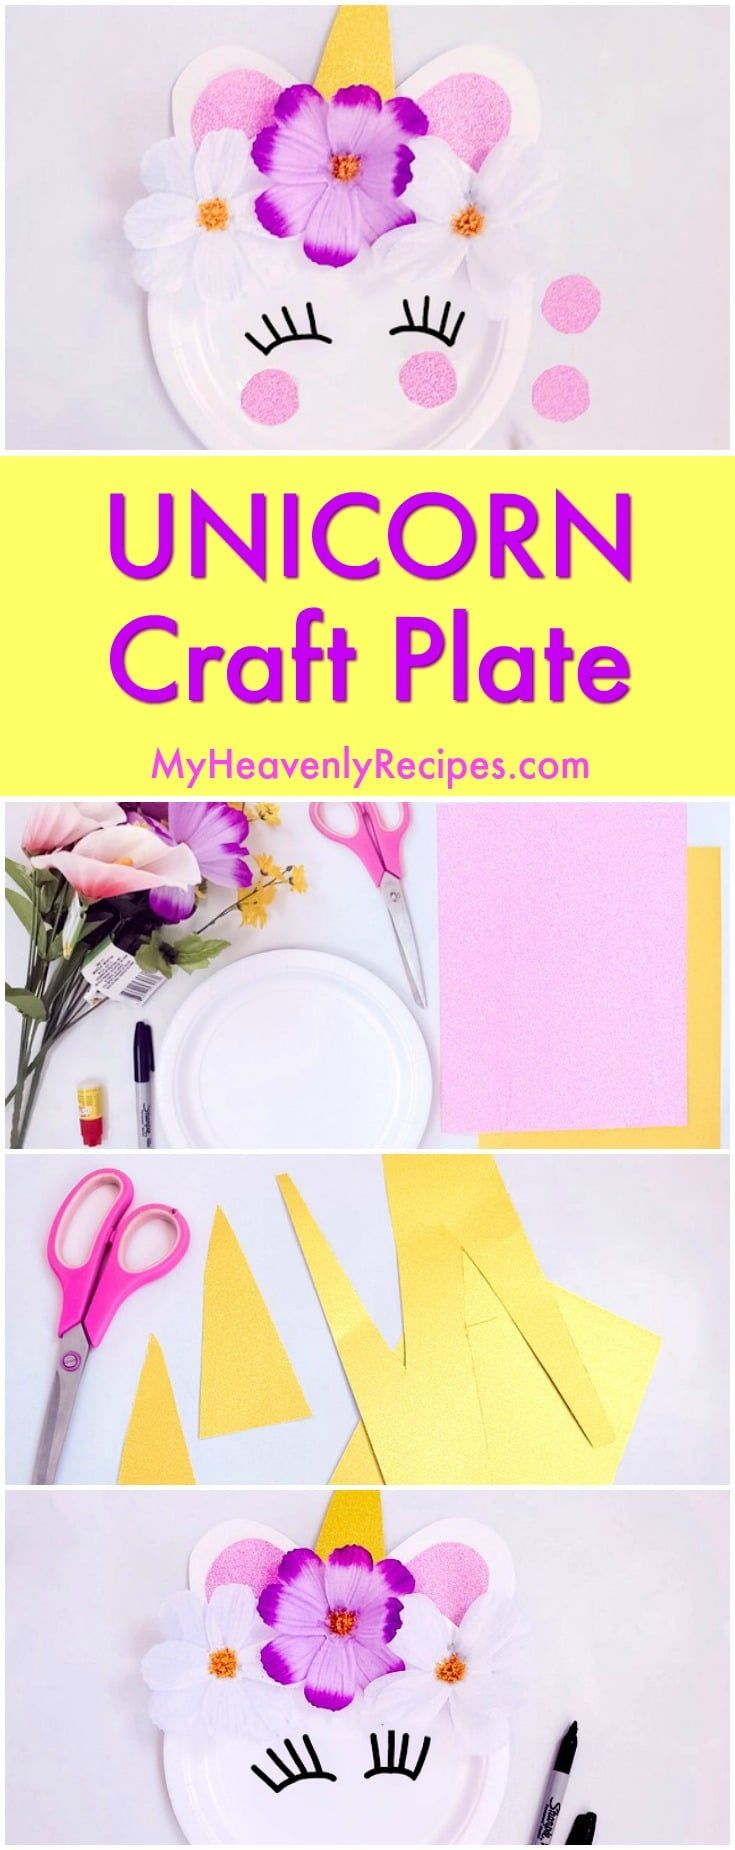 This Unicorn Craft Plate is THE cutest unicorn craft project and unicorn DIY project! If your kids love unicorns or if you're hosting a unicorn birthday party, this is the unicorn craft to make. #unicorn #unicorncraft #unicornideas #kidcrafts #crafts #diy via @heavenlyrecipe